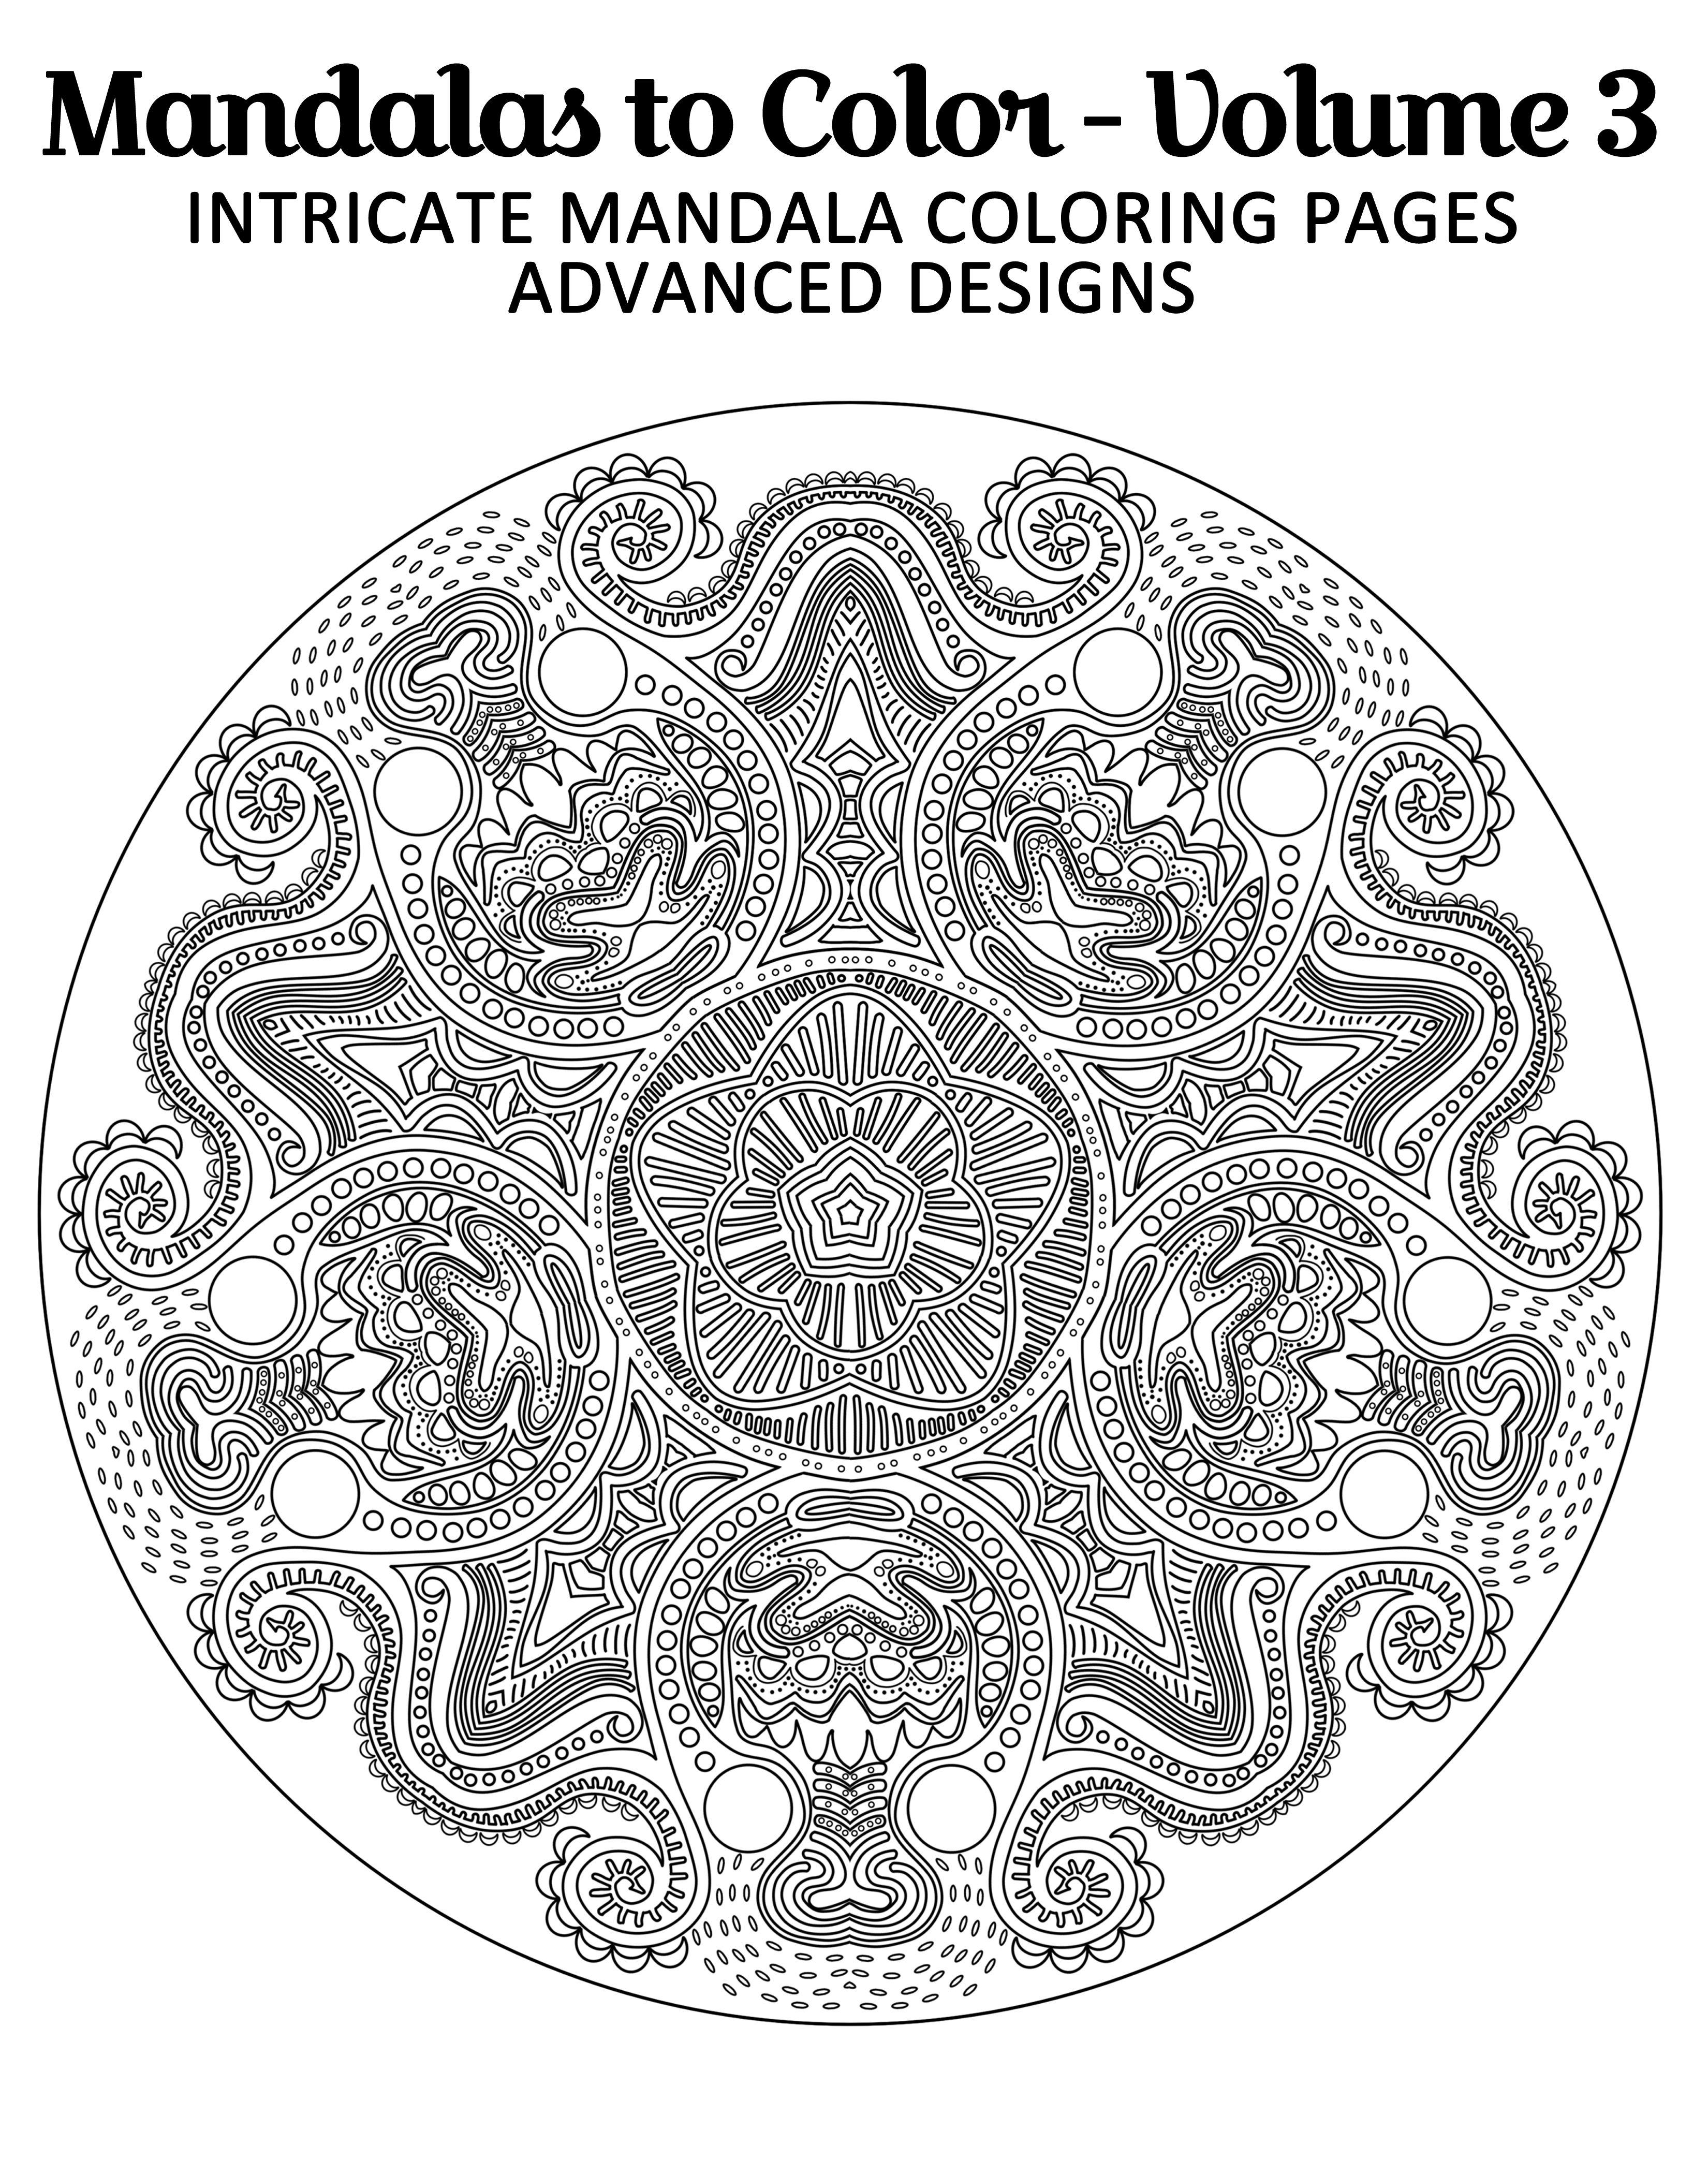 Make Coloring As Your Fun Way To Relax Get Free Mandala Image From Mandalas To Color Intricate Mandal Mandala Coloring Pages Coloring Pages Mandala Coloring